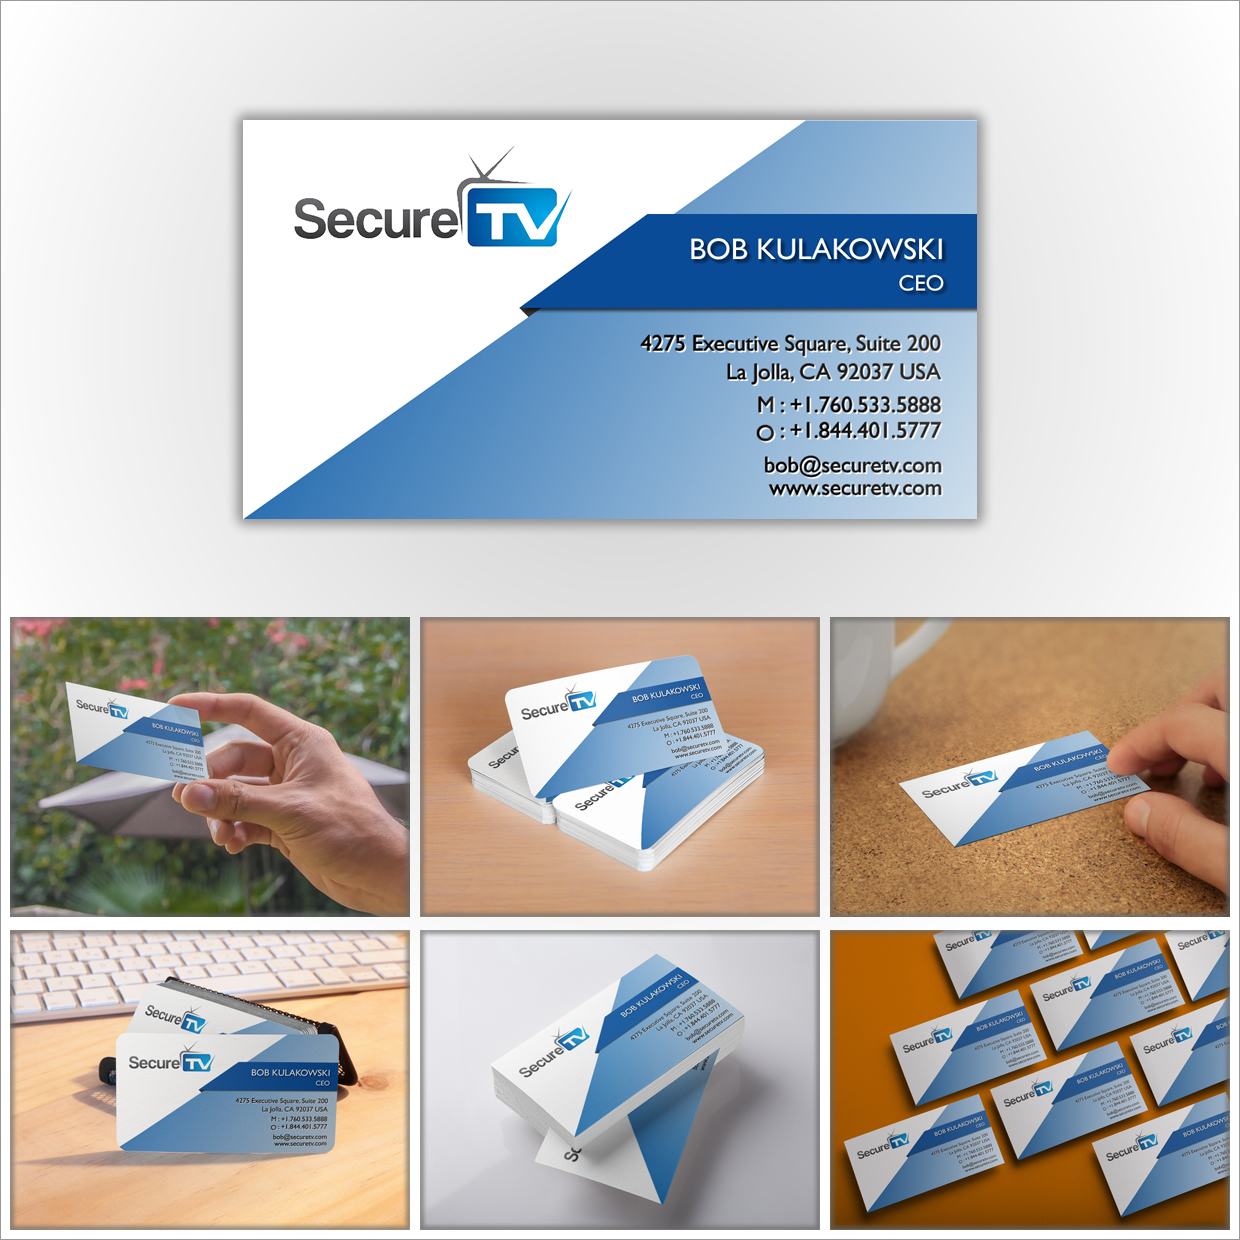 Professional serious cable tv business card design for secure tv business card design by seda for secure tv design 12326694 reheart Image collections